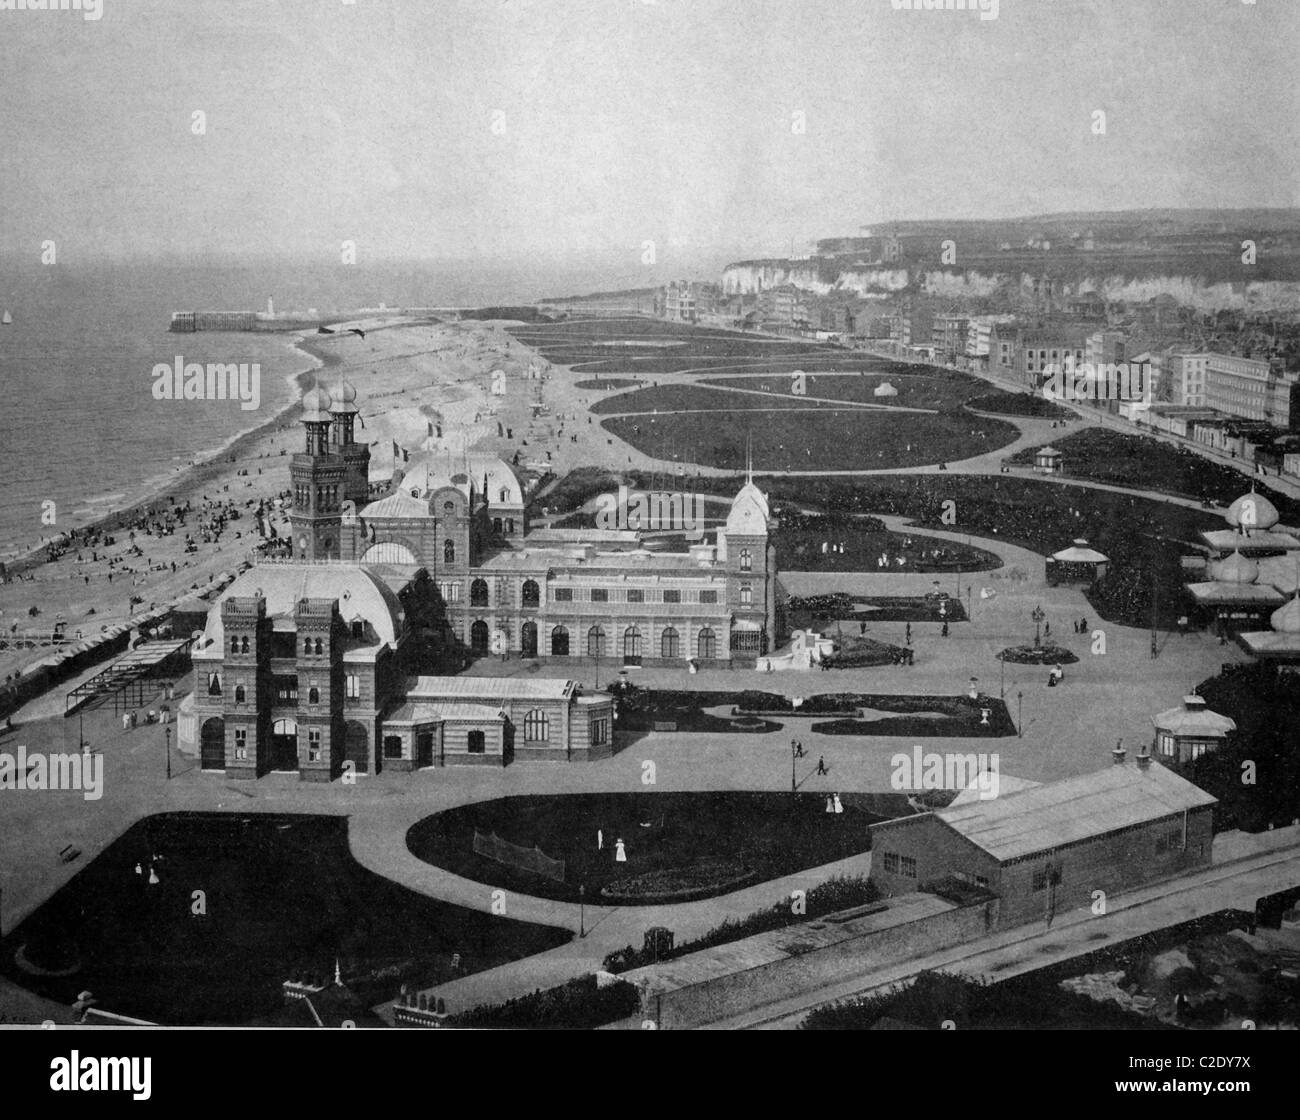 One of the first autotypes of the beach and casino in Dieppe, France, historical photograph, 1884 Stock Photo